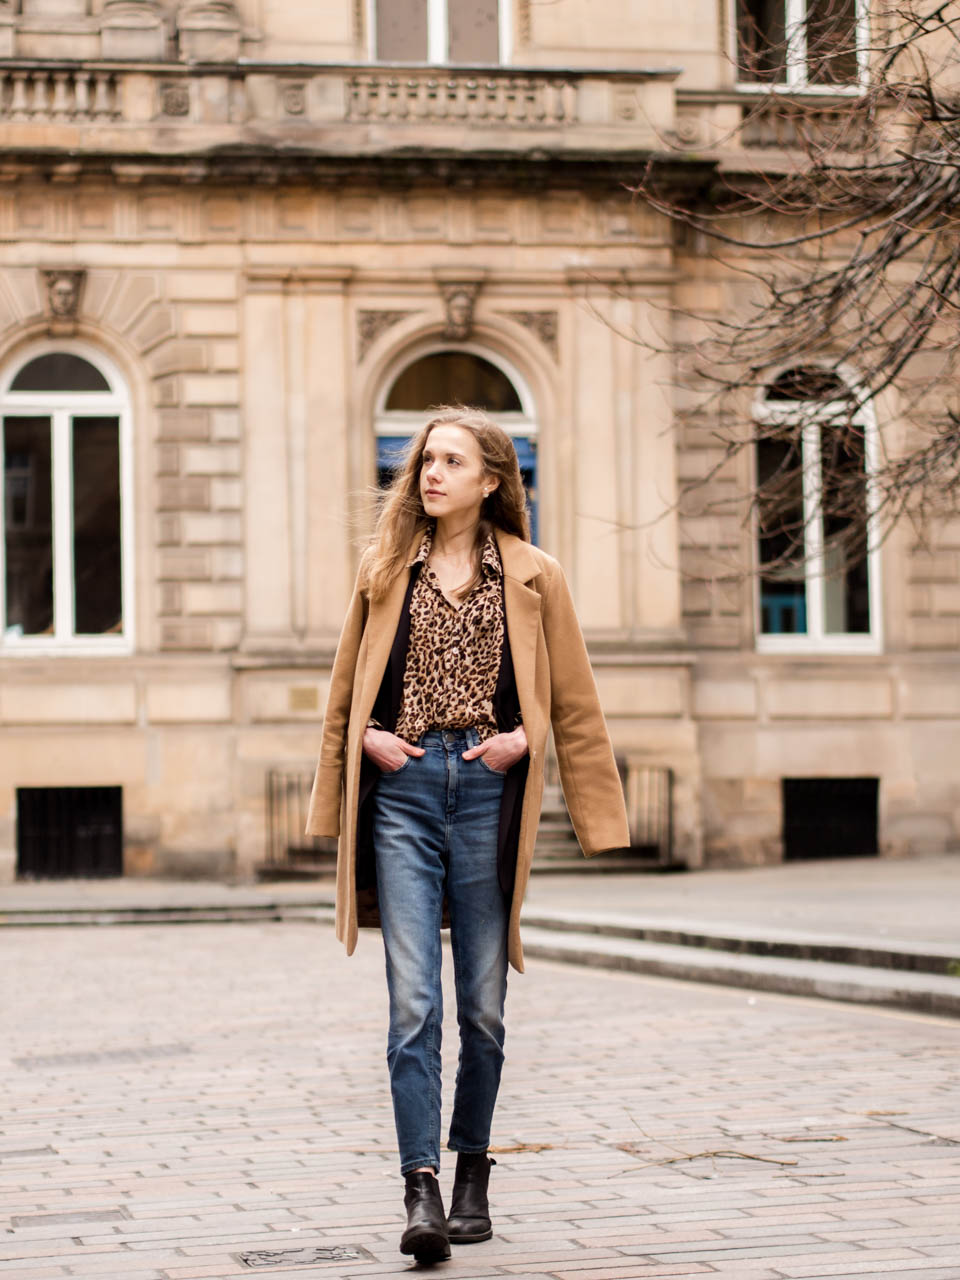 fashion-blogger-outfit-inspiration-leopard-top-mom-jeans-blazer-camel-coat